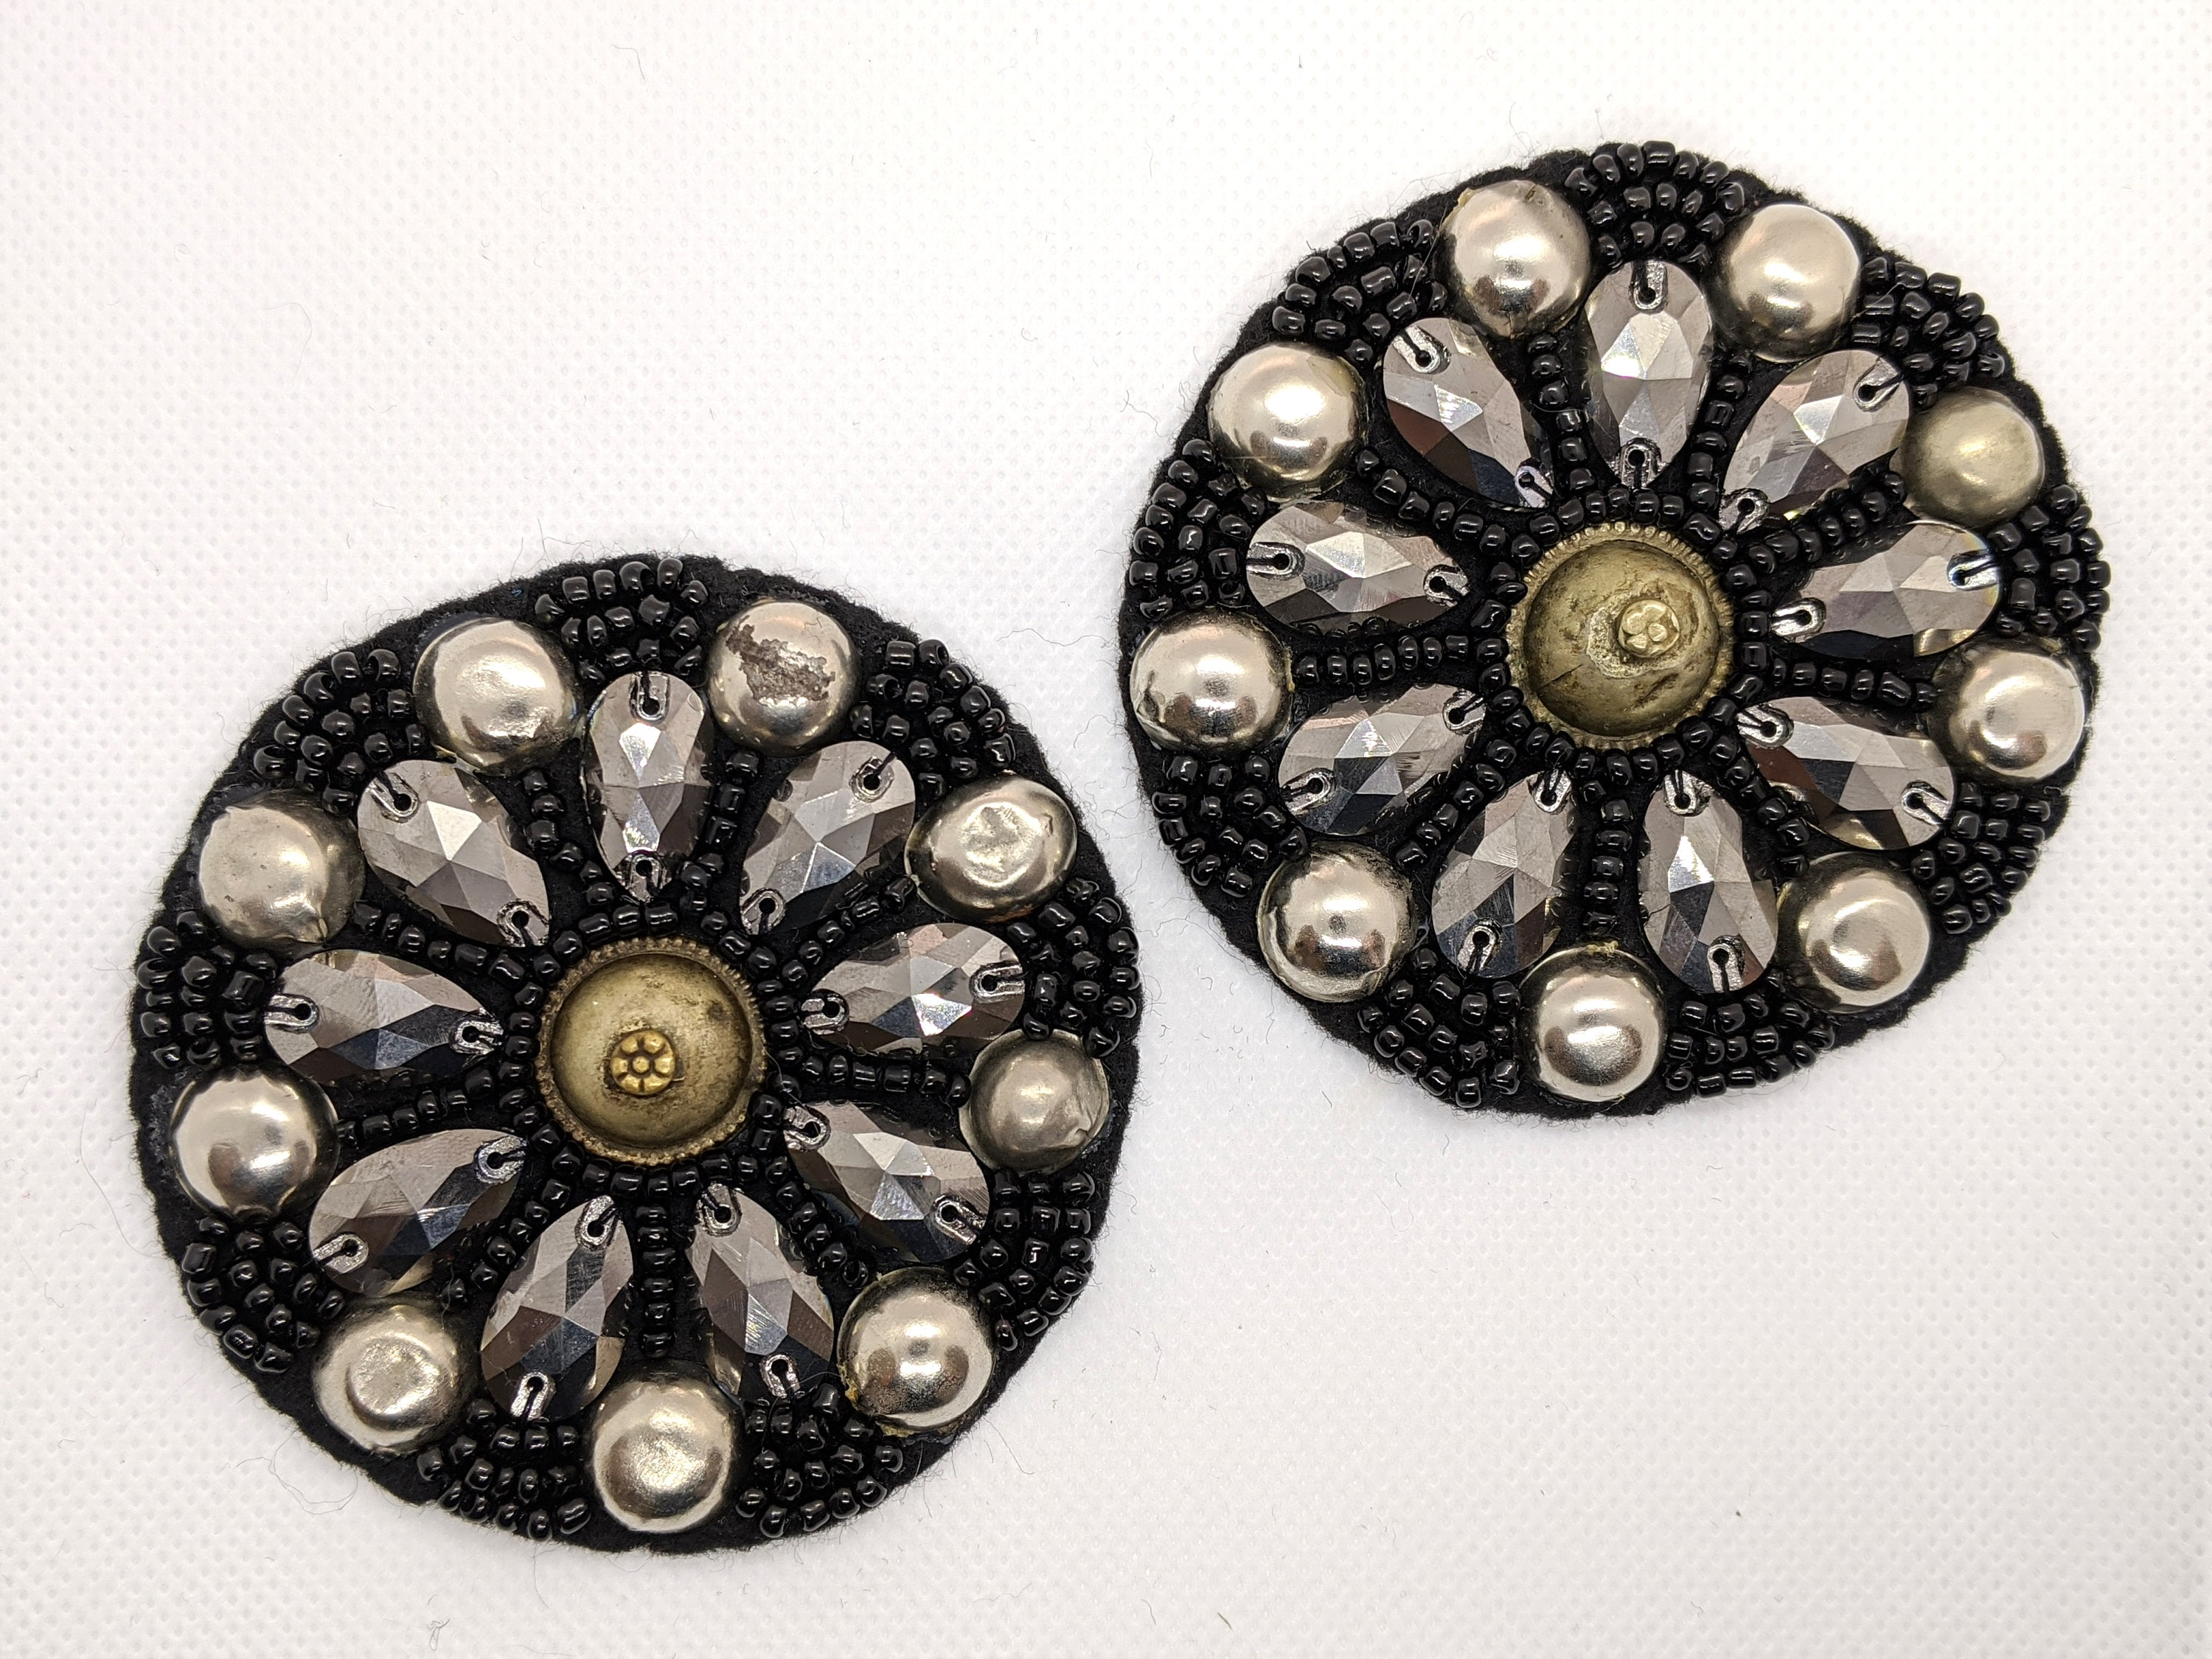 Barato De Alta Calidad Black silver beaded tribal medallions diy decoration 1X1Tsc